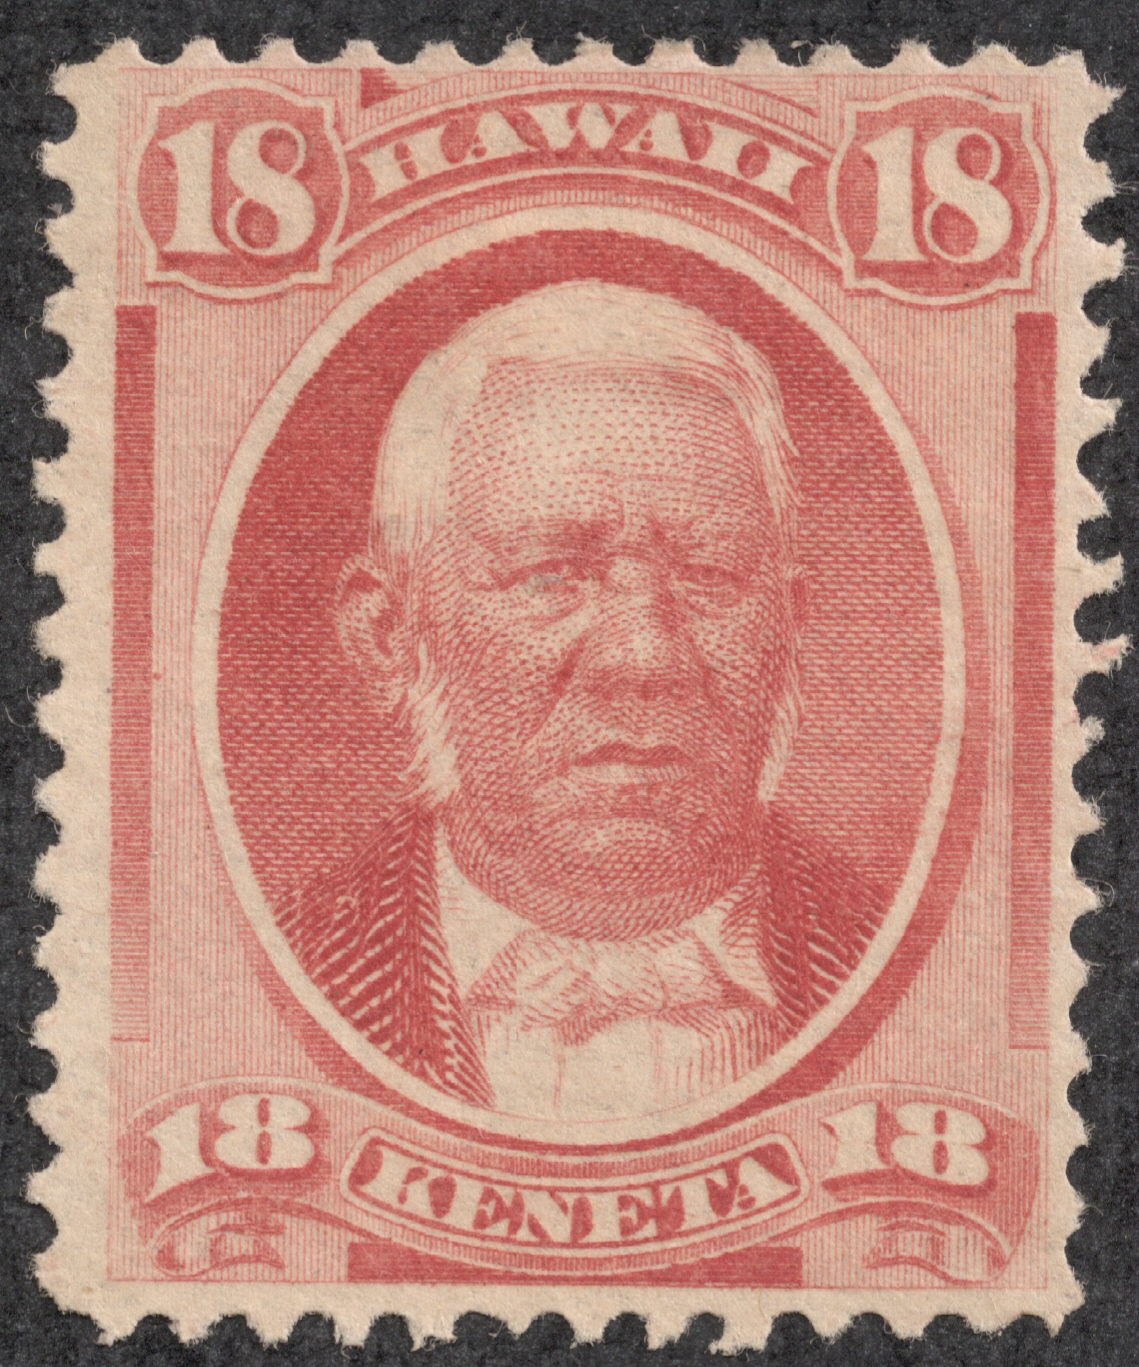 10 Most Valuable and Rarest Postage Stamps in History